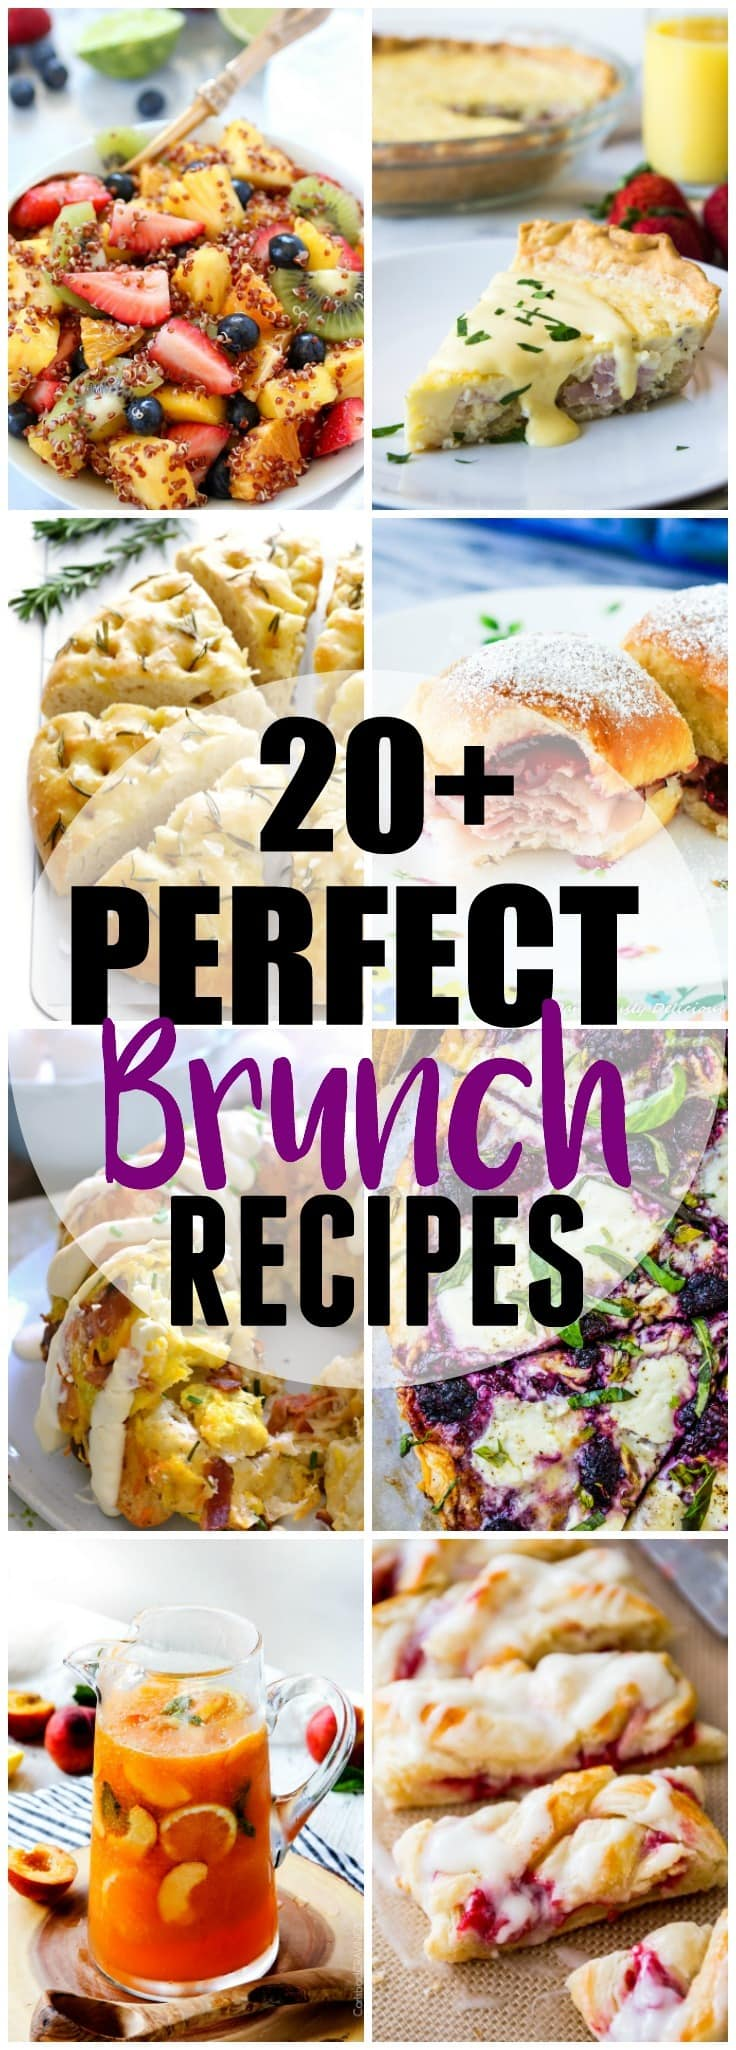 20+ Perfect Brunch Recipes! Enjoy the magical meal of brunch with these 20+ recipes featuring breakfast casseroles, fruit salads, egg dishes, pancakes, waffles and more!